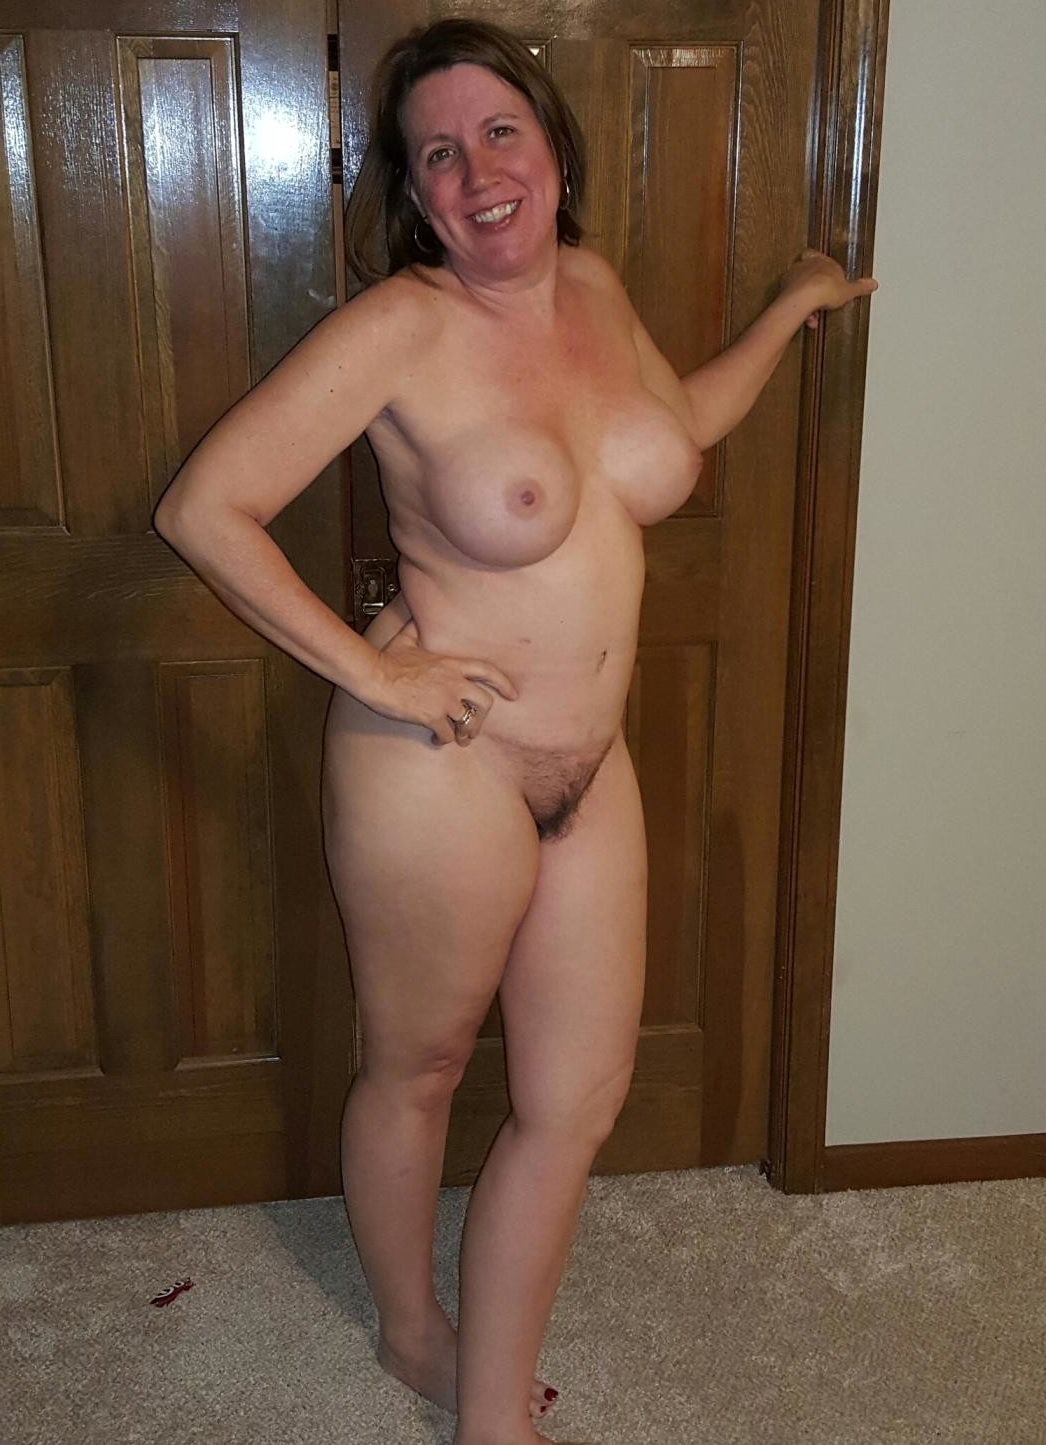 Nude old women pics